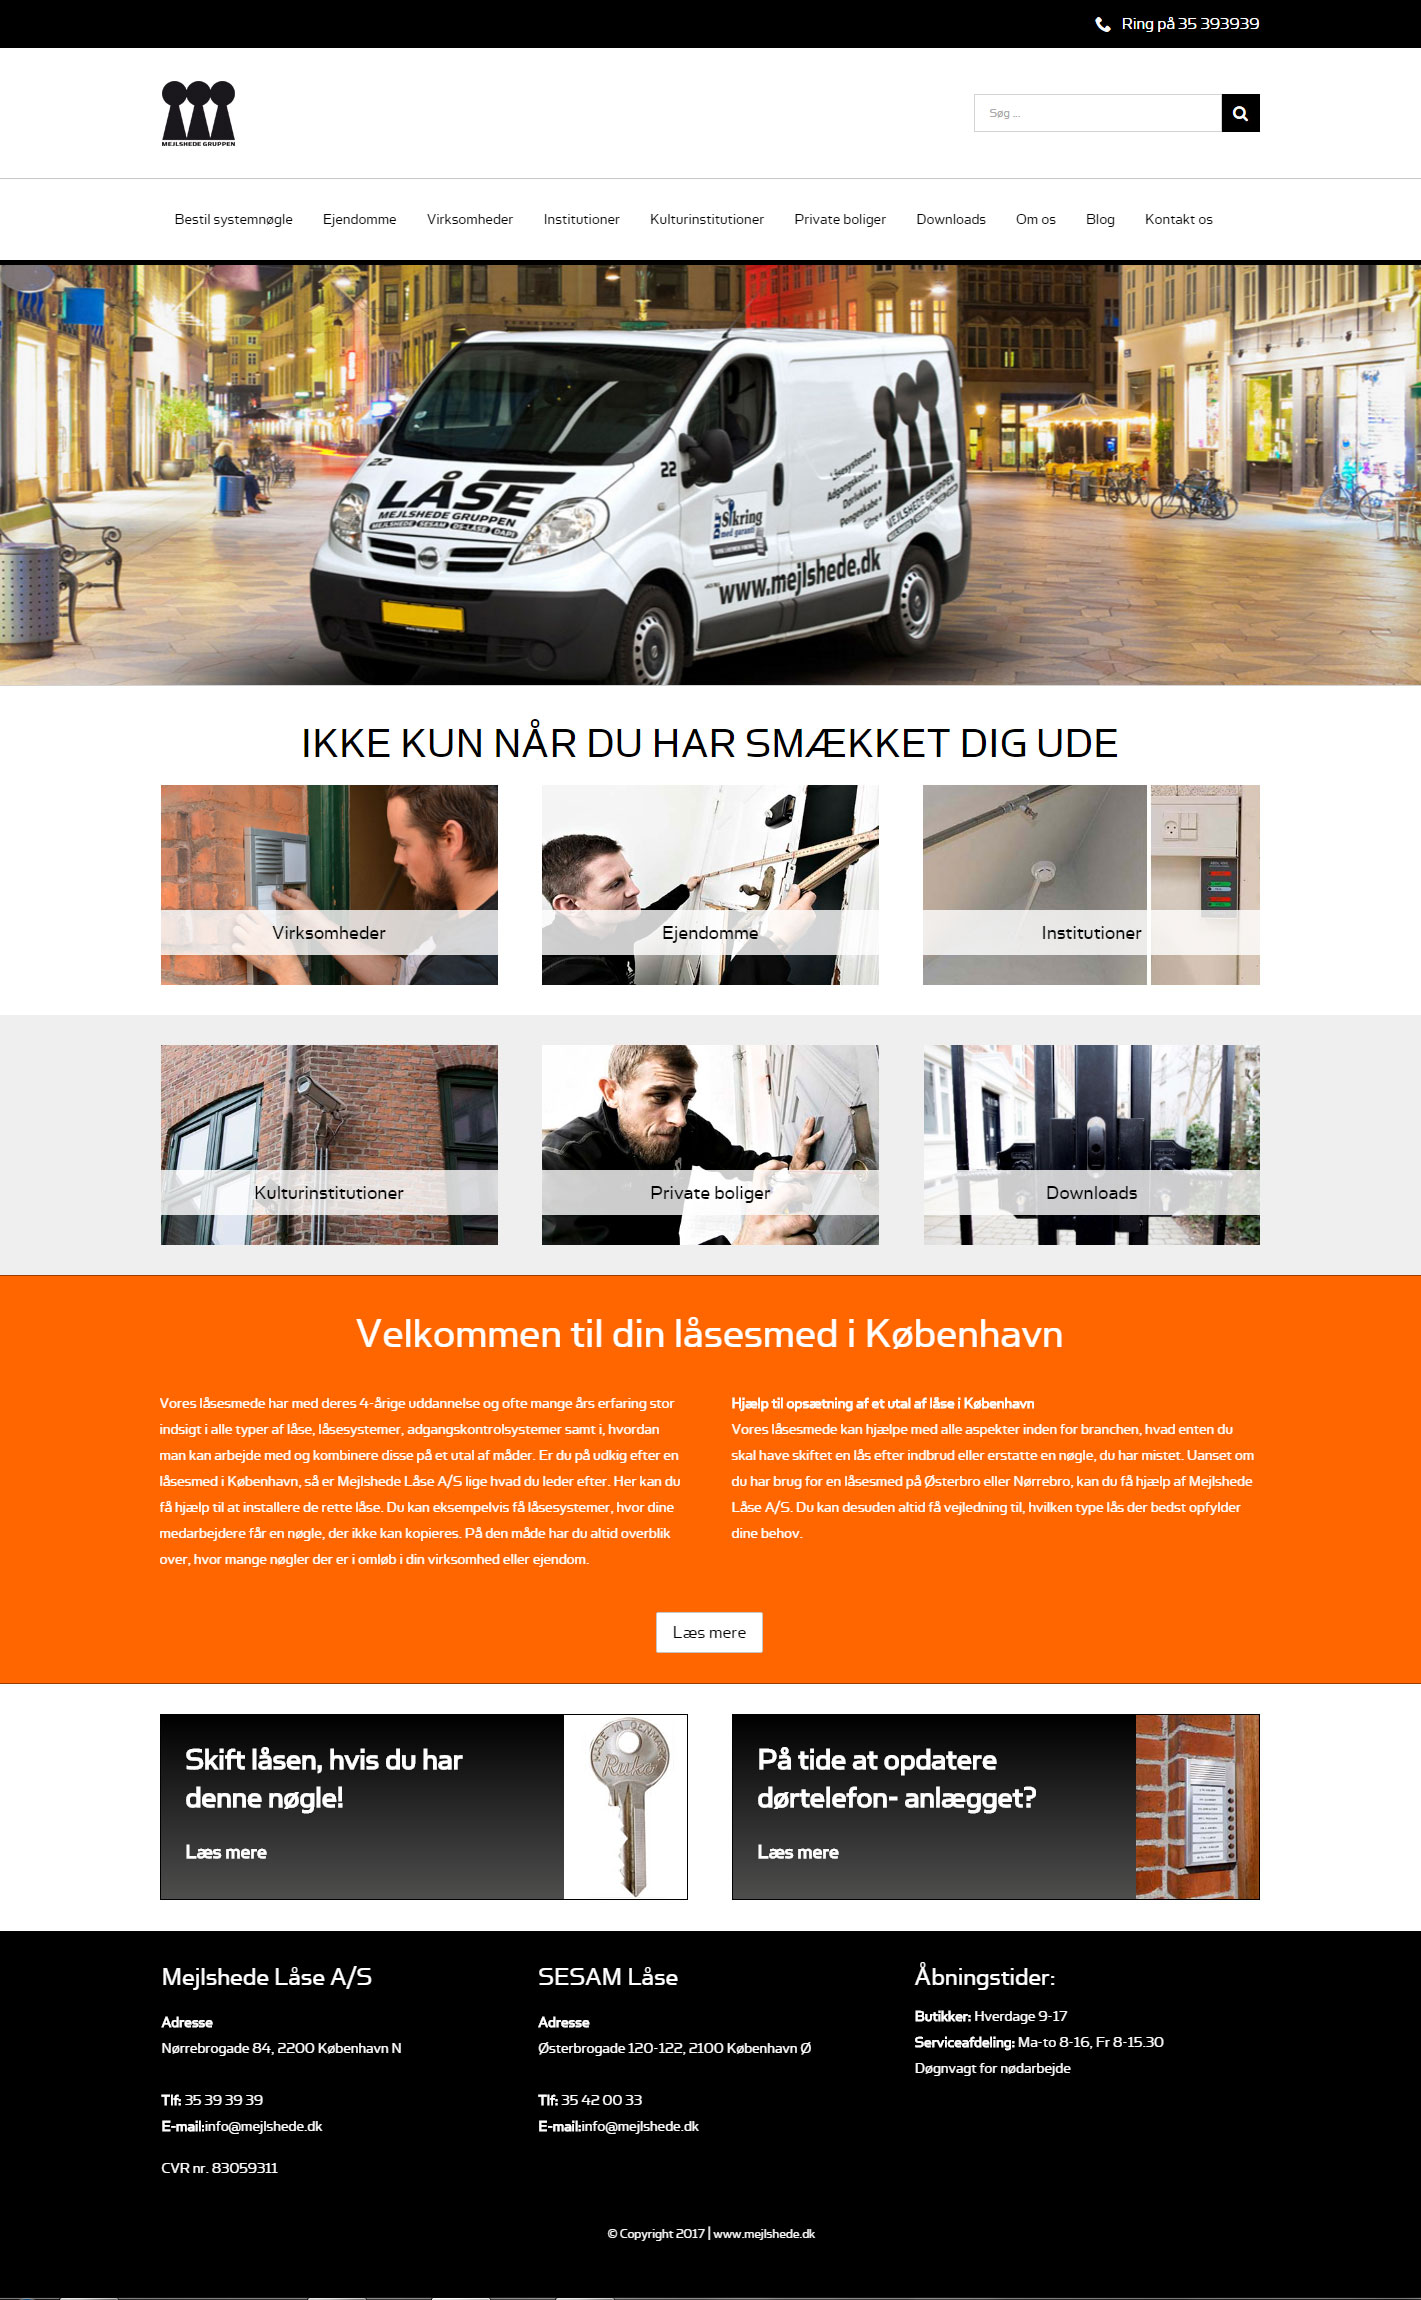 wordpress website til mejlshede.dk